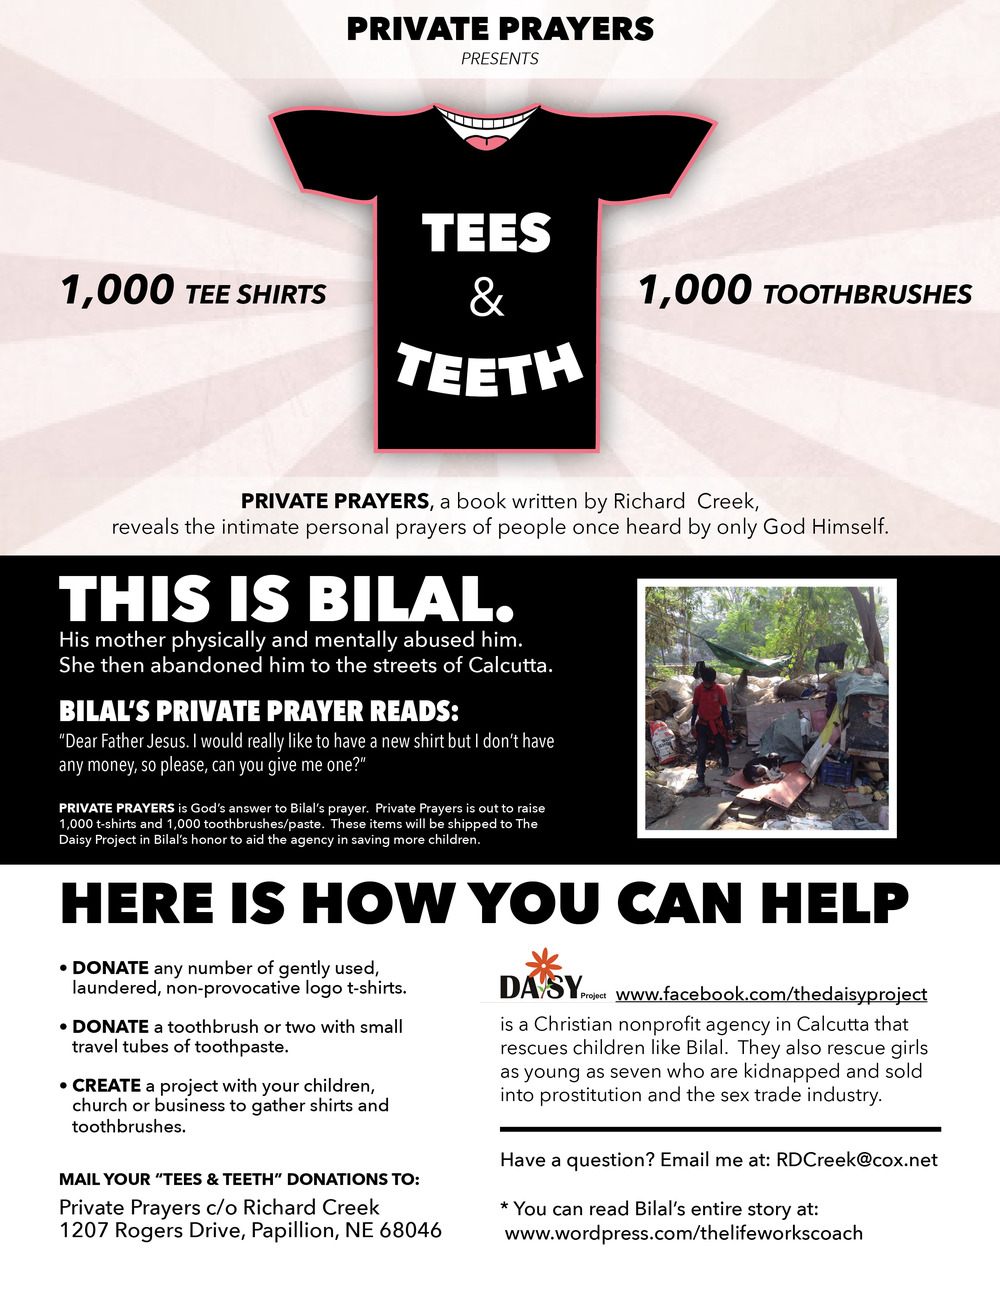 Bilal/Tees & Teeth